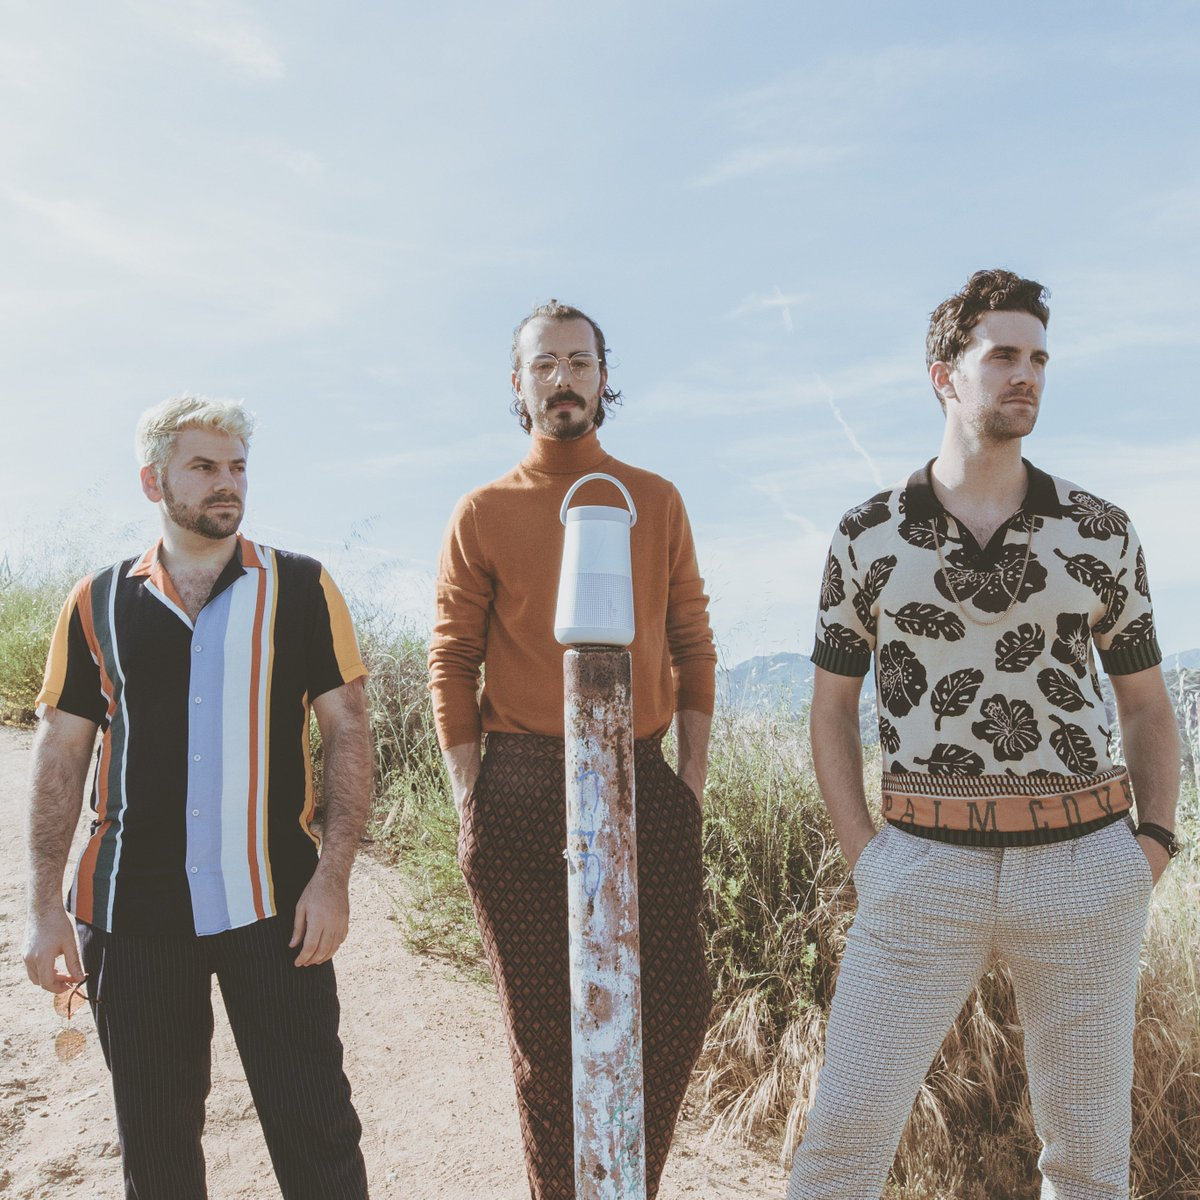 """#NewMusic Alert! @theshadowboxers' new song """"Last Summer"""" will take you into the weekend on a high note: https://bose.life/2GXPSn1 🎧 #SoundLink Revolve+"""